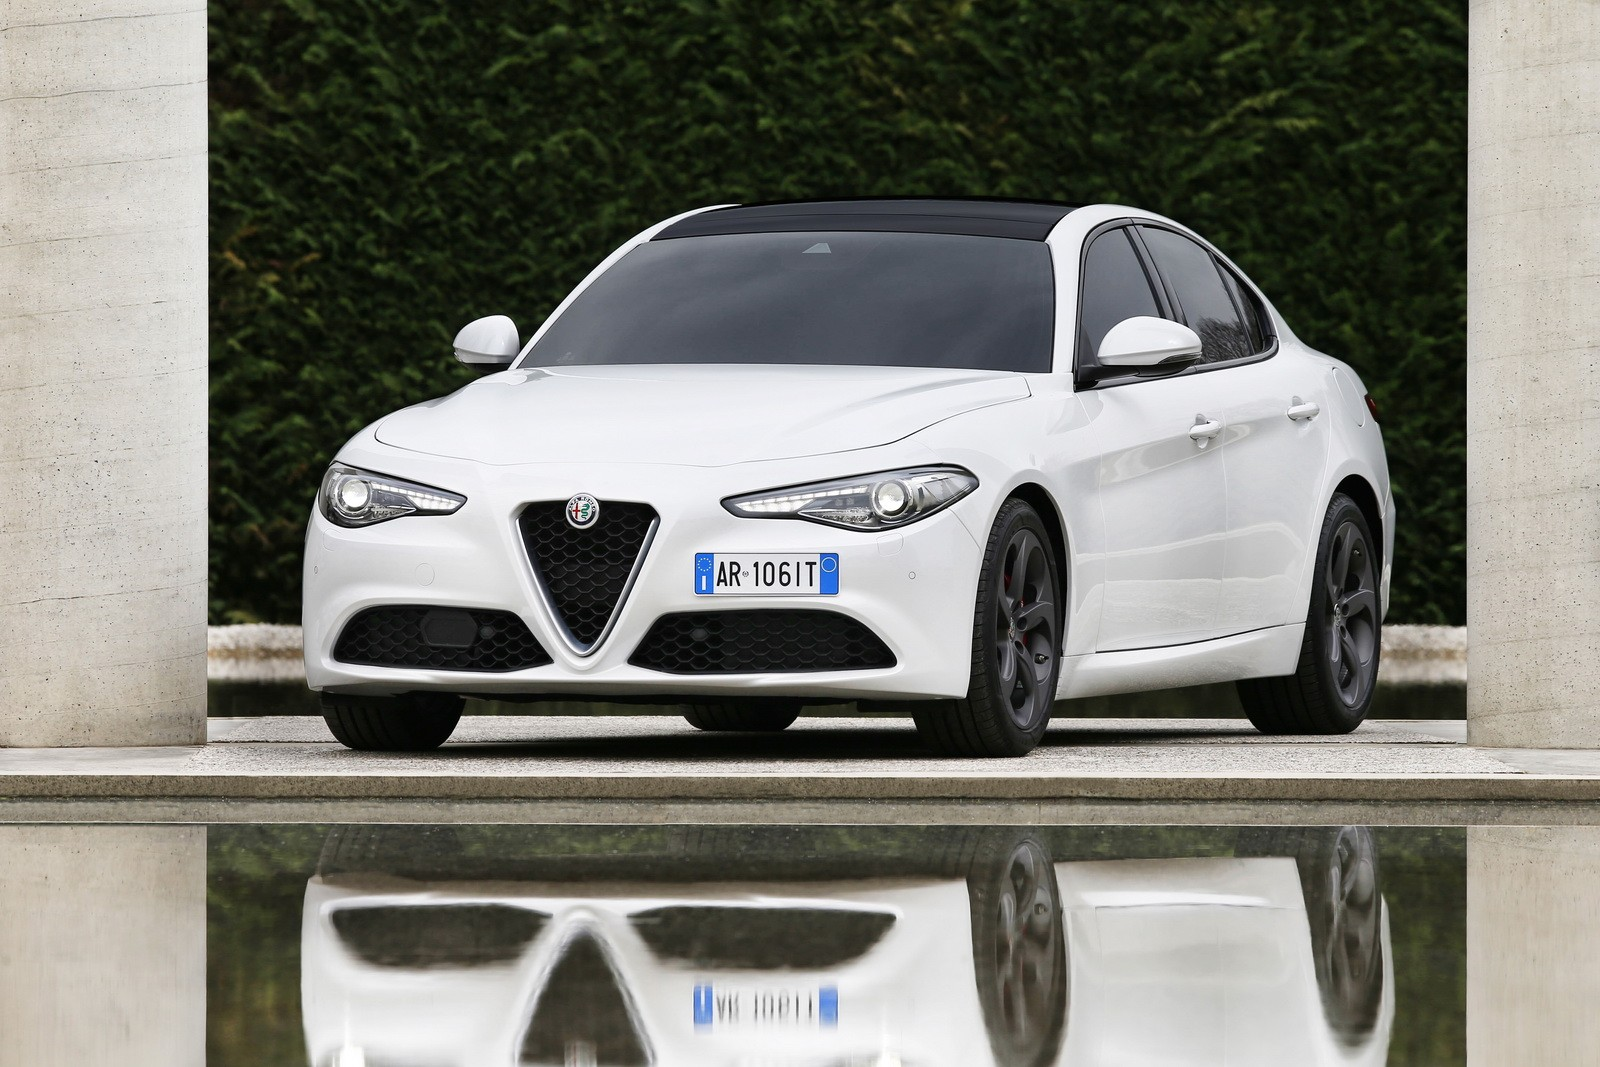 alfa romeo giulia price starts at 35 500 giulia quadrifoglio is 79 000 autoevolution. Black Bedroom Furniture Sets. Home Design Ideas